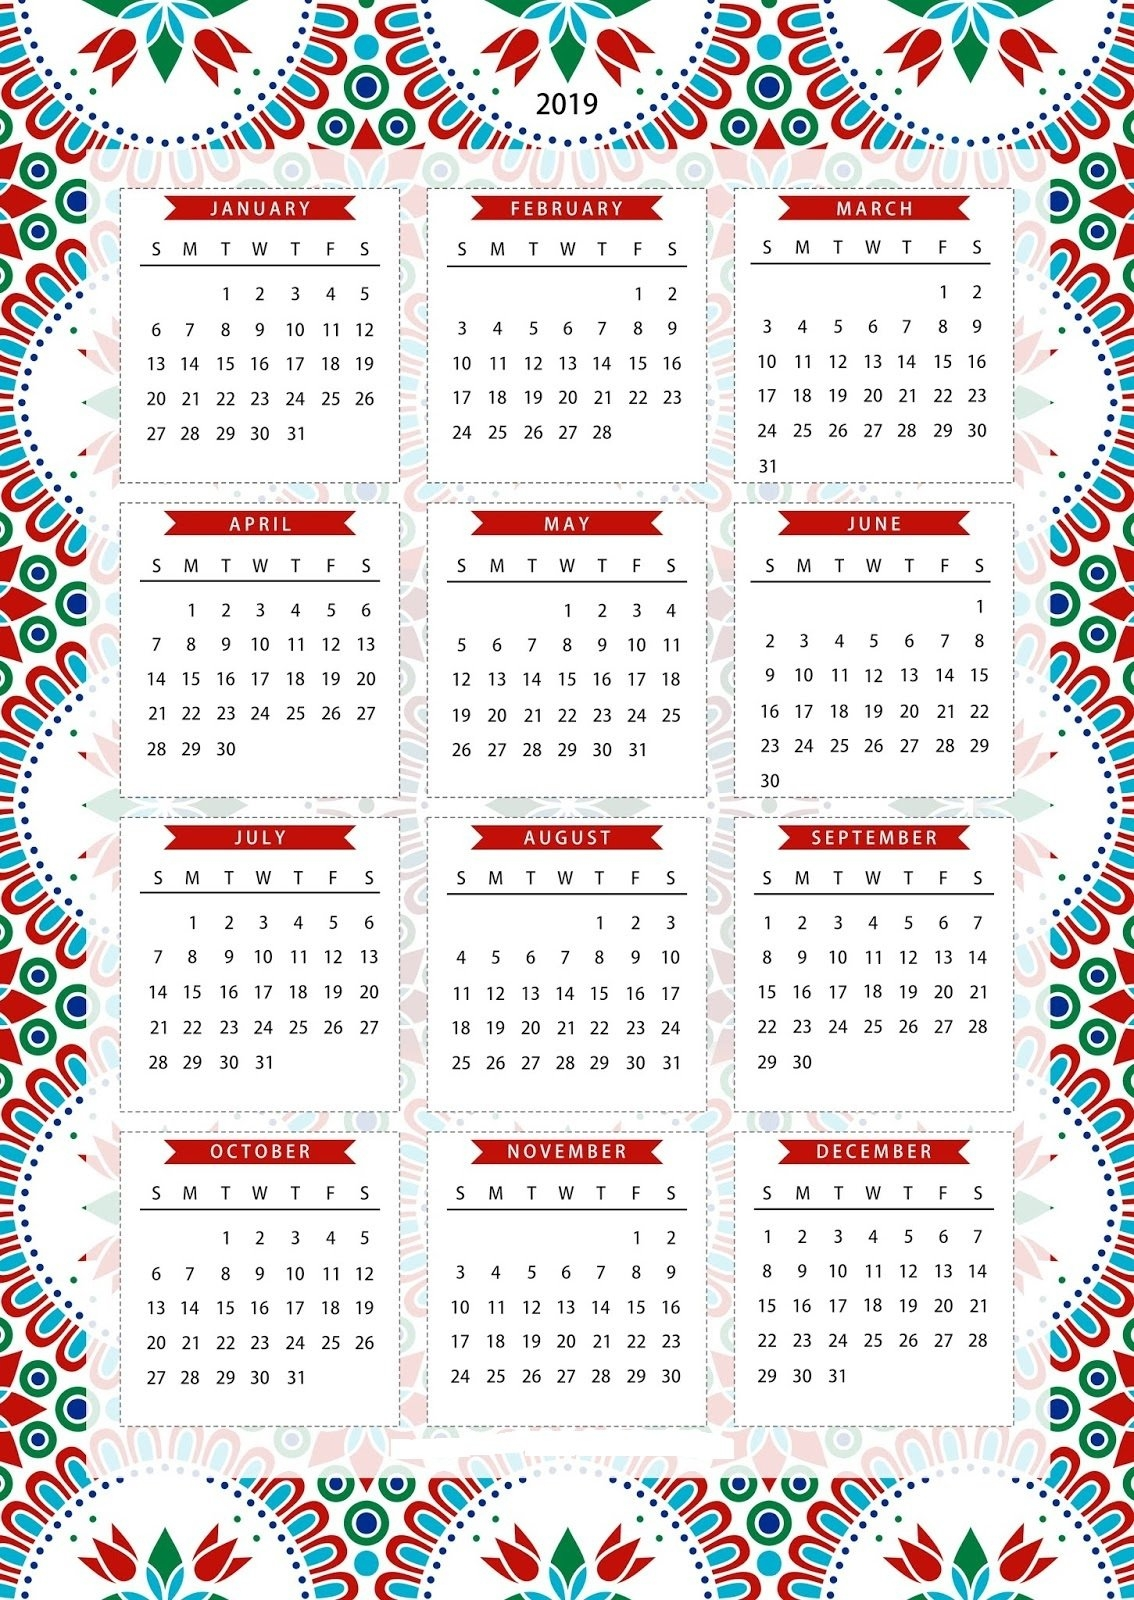 Free One Page Calendar Template Printable Download 2019 | Free Calendar 2019 In One Page